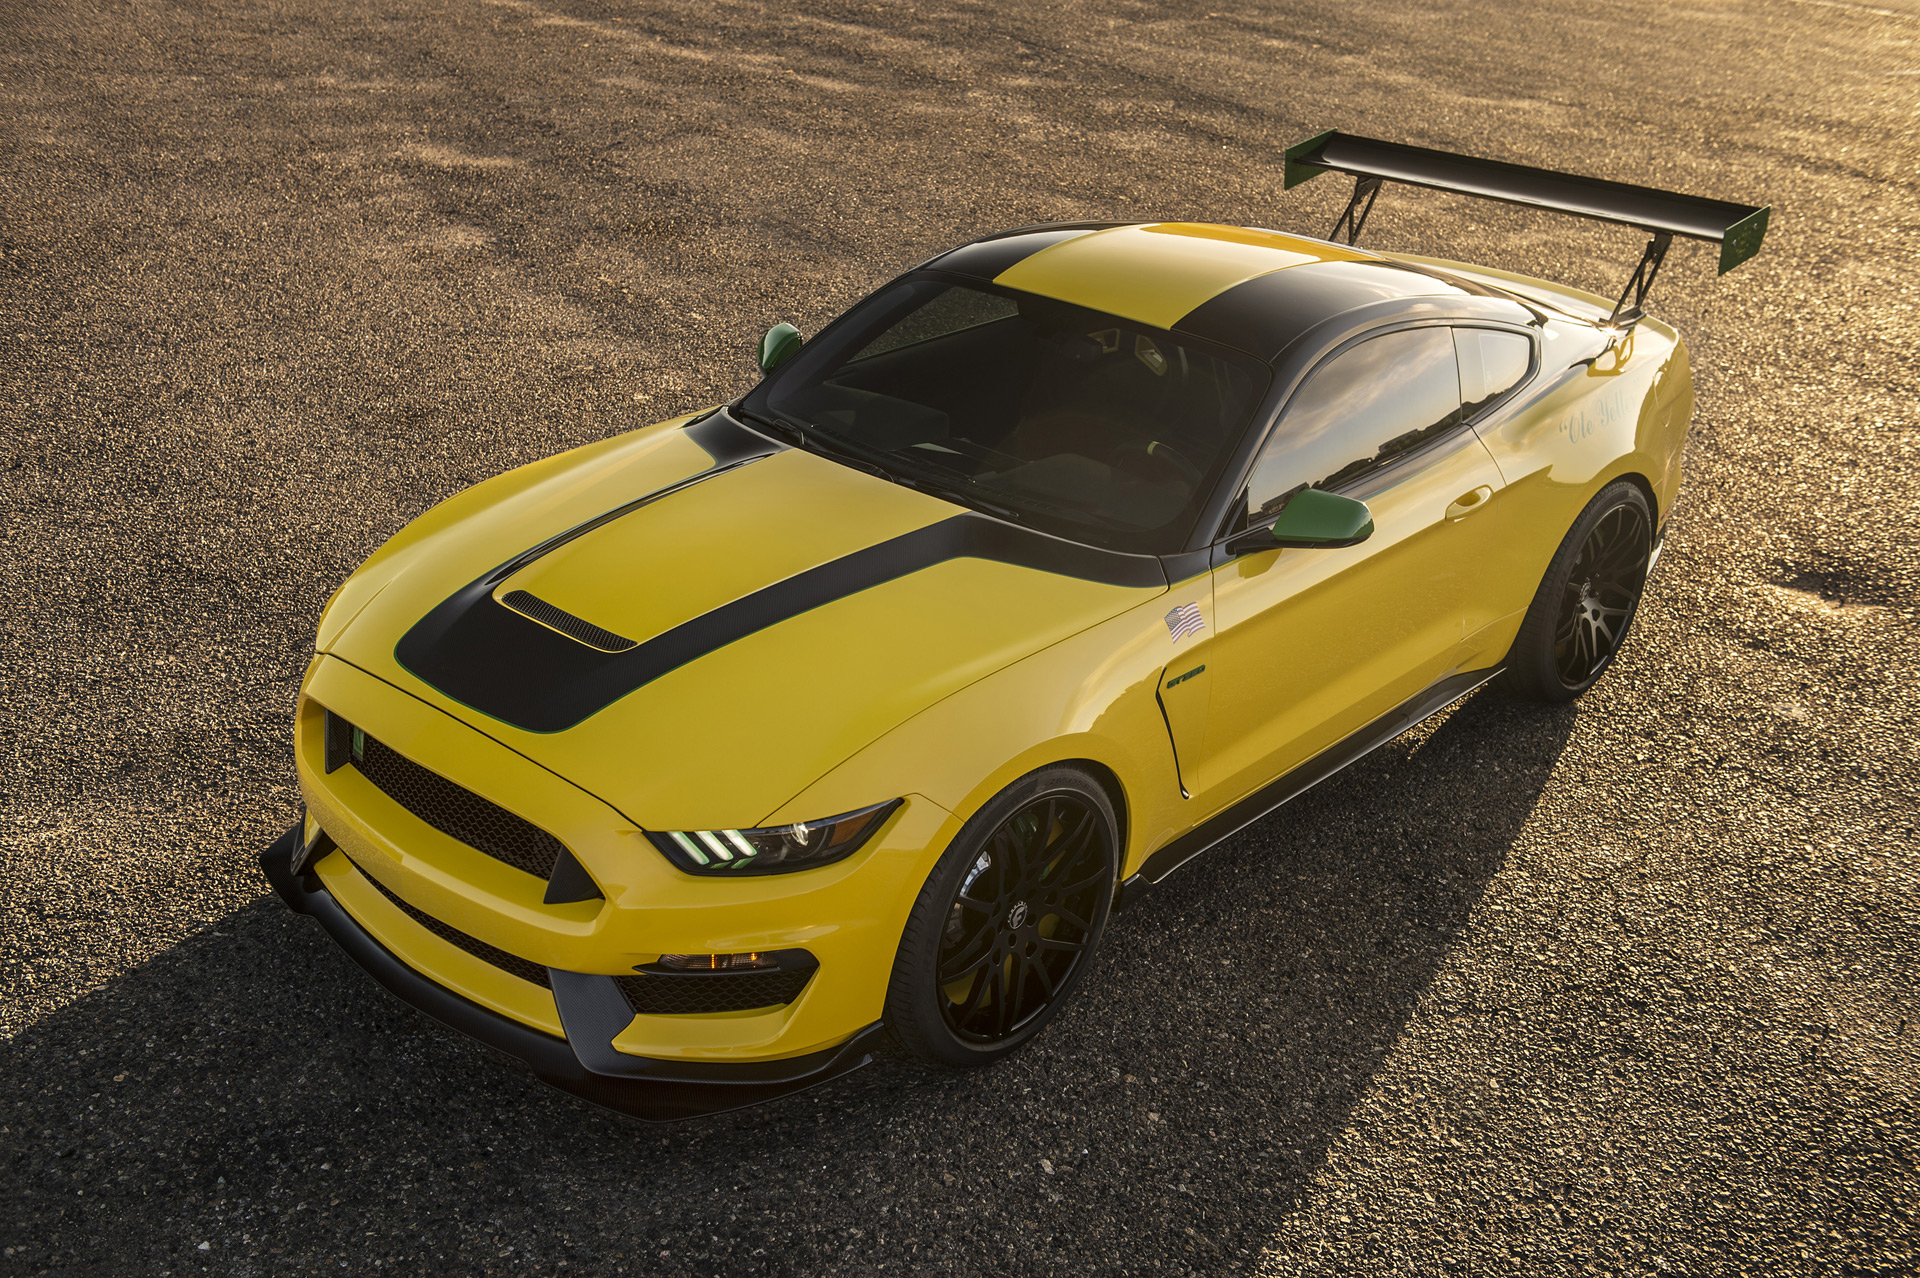 2017 Aston Martin DB11, 2018 BMW X5, Ole Yeller Mustang Shelby GT350: This Week's Top Photos